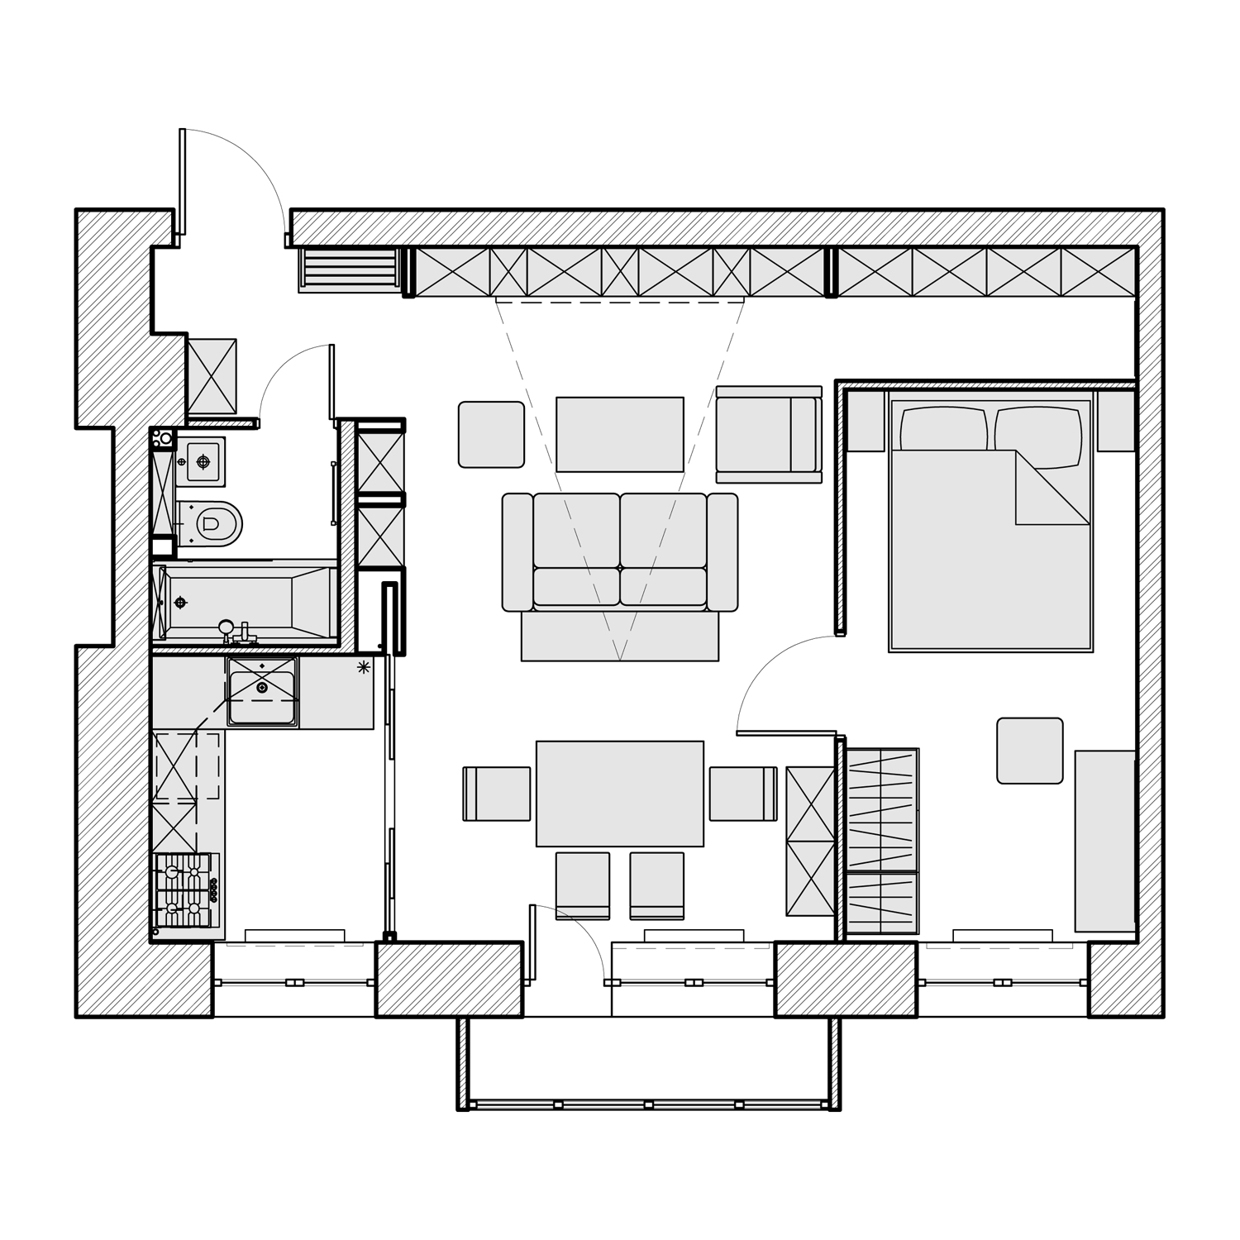 House plans 500 to 600 square feet for Interior design 600 sq ft flat